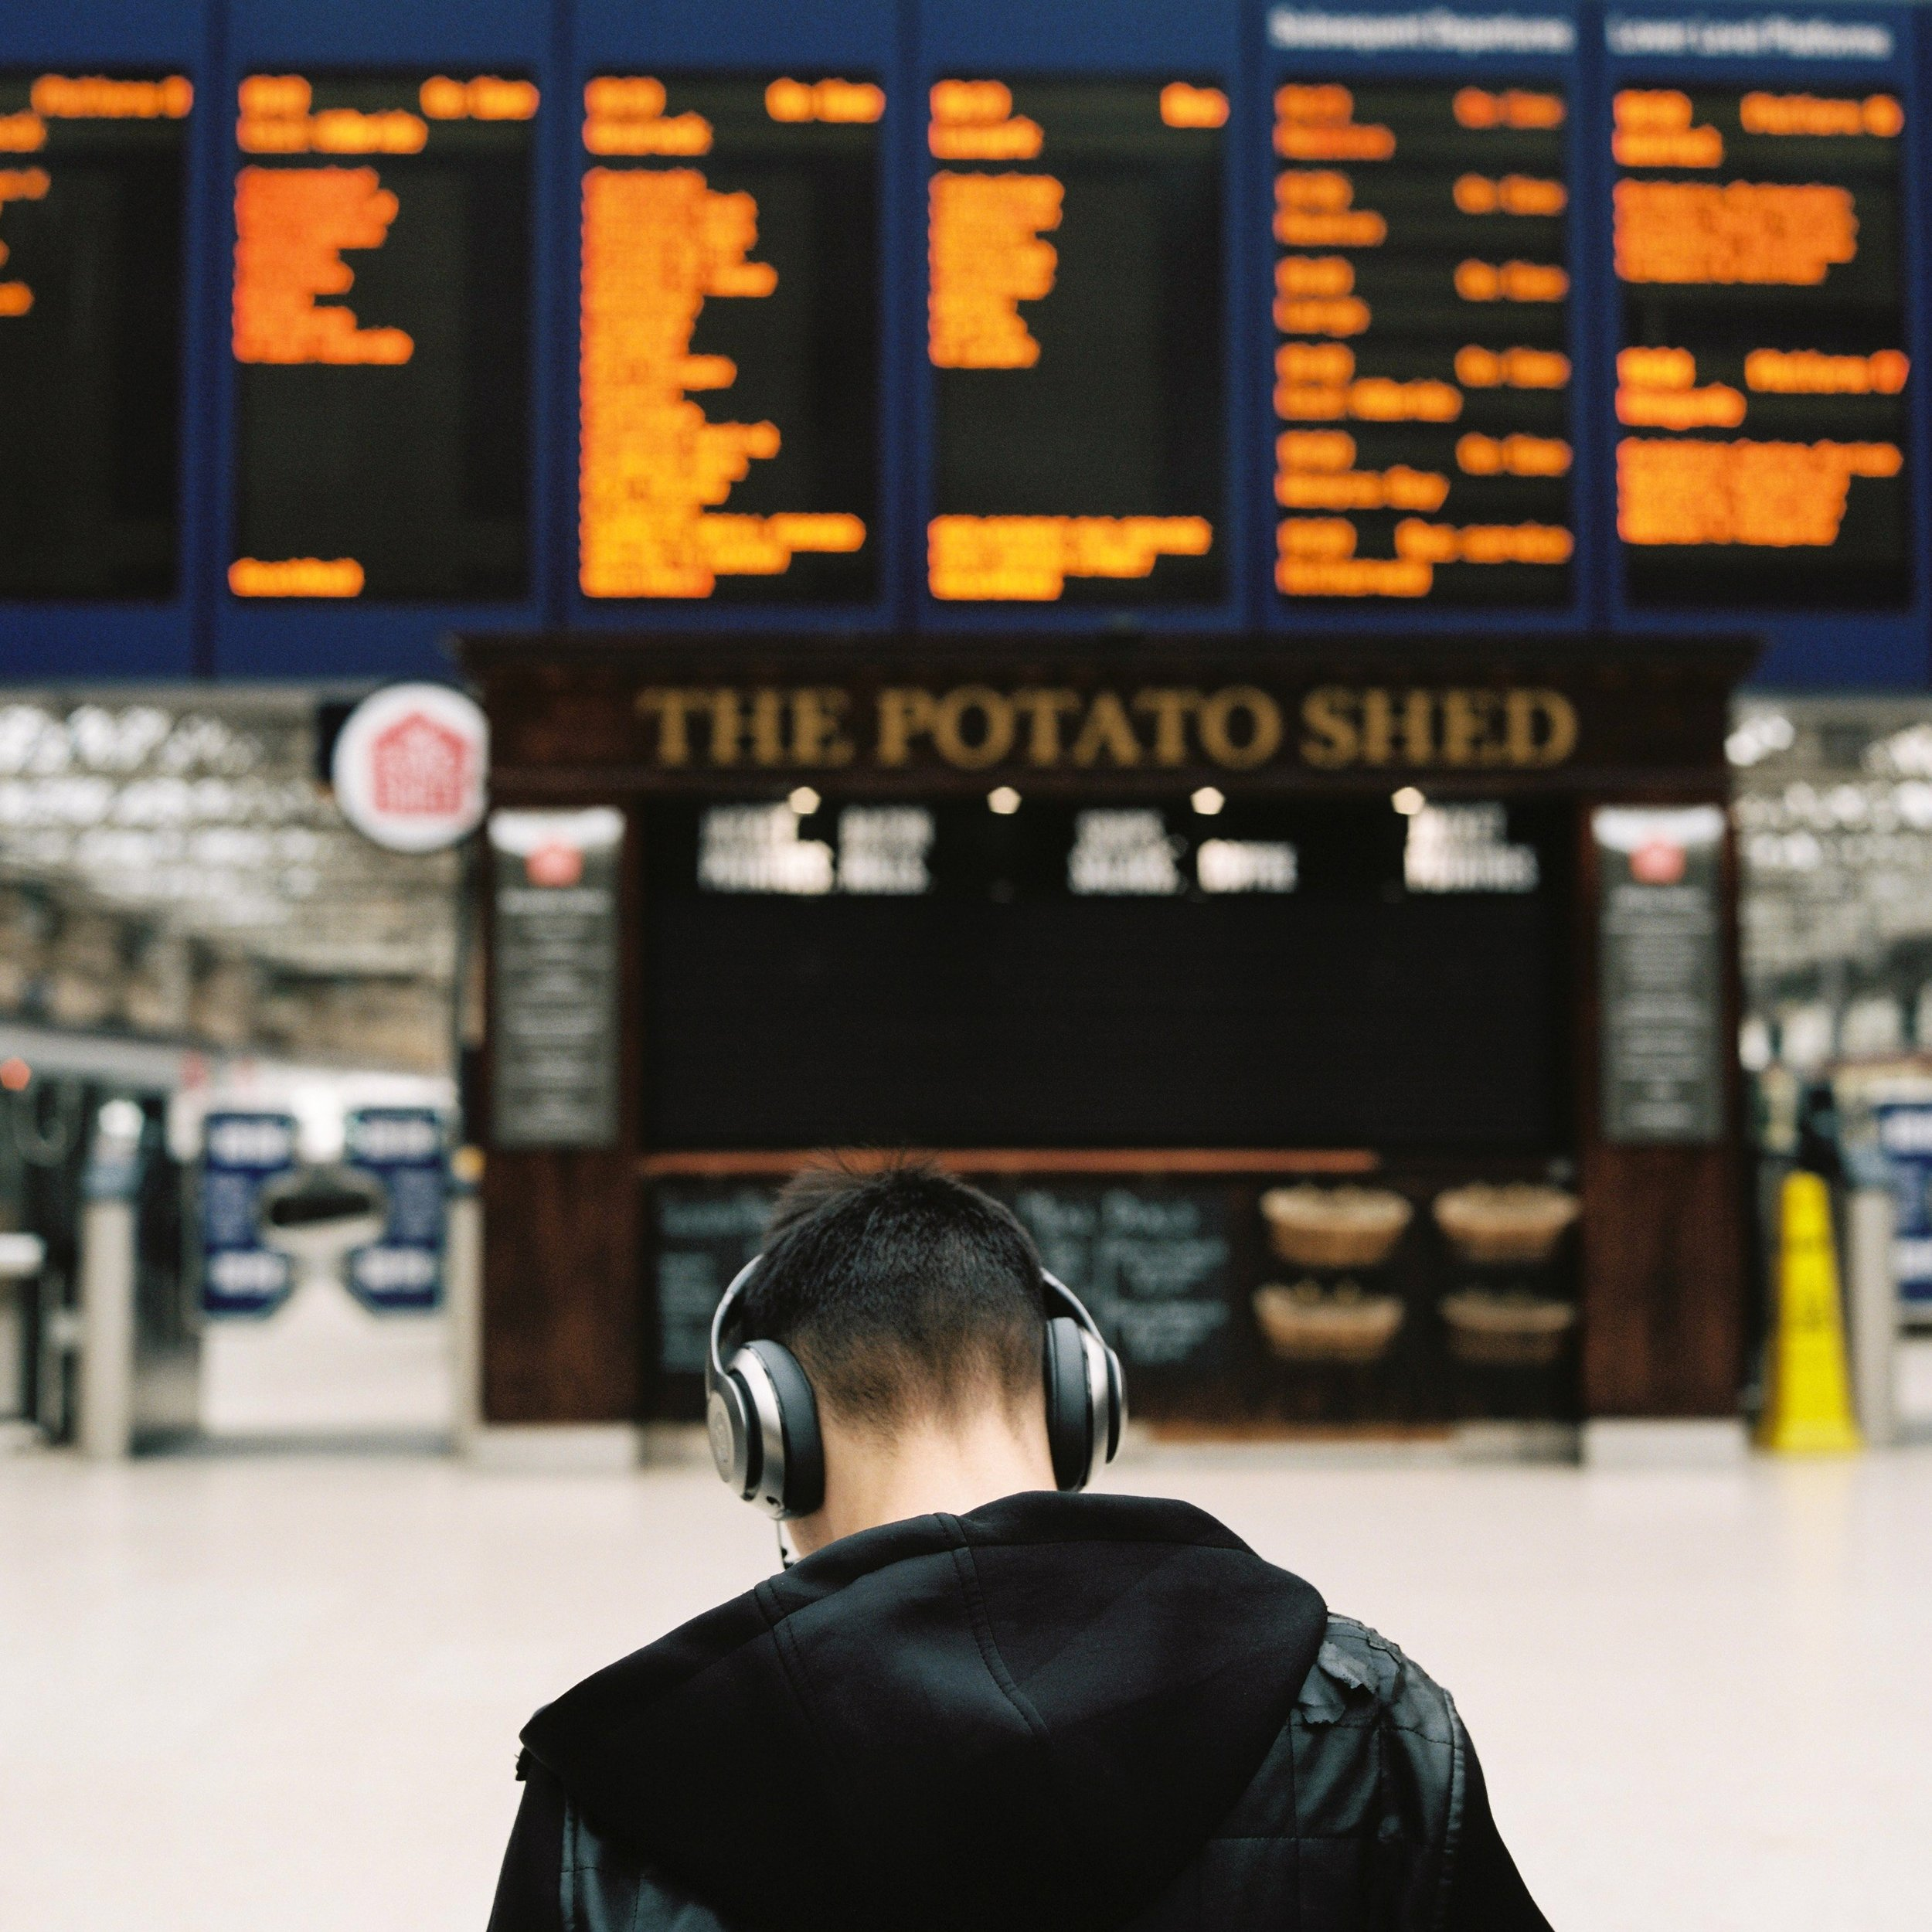 Glasgow train station headphones © Ilya Ilyukhin.jpg